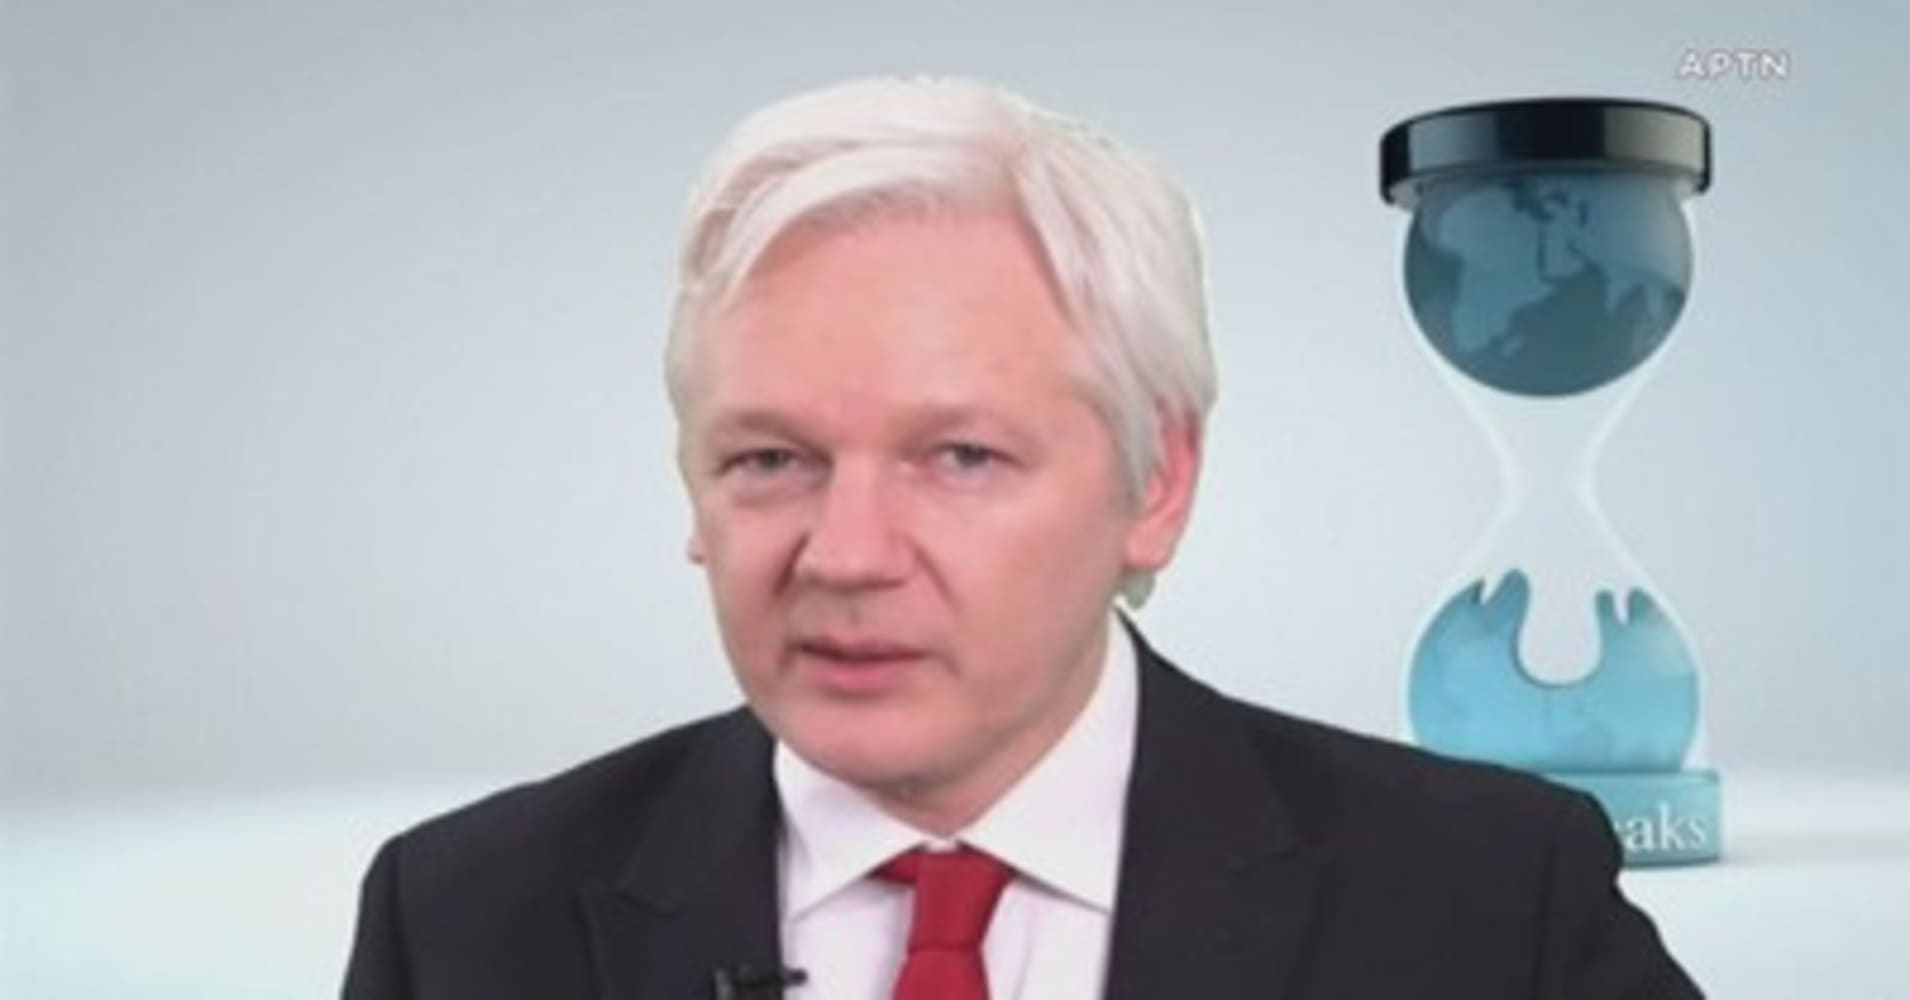 Wikileaks: The CIA has 'lost control' of its cyber weapons